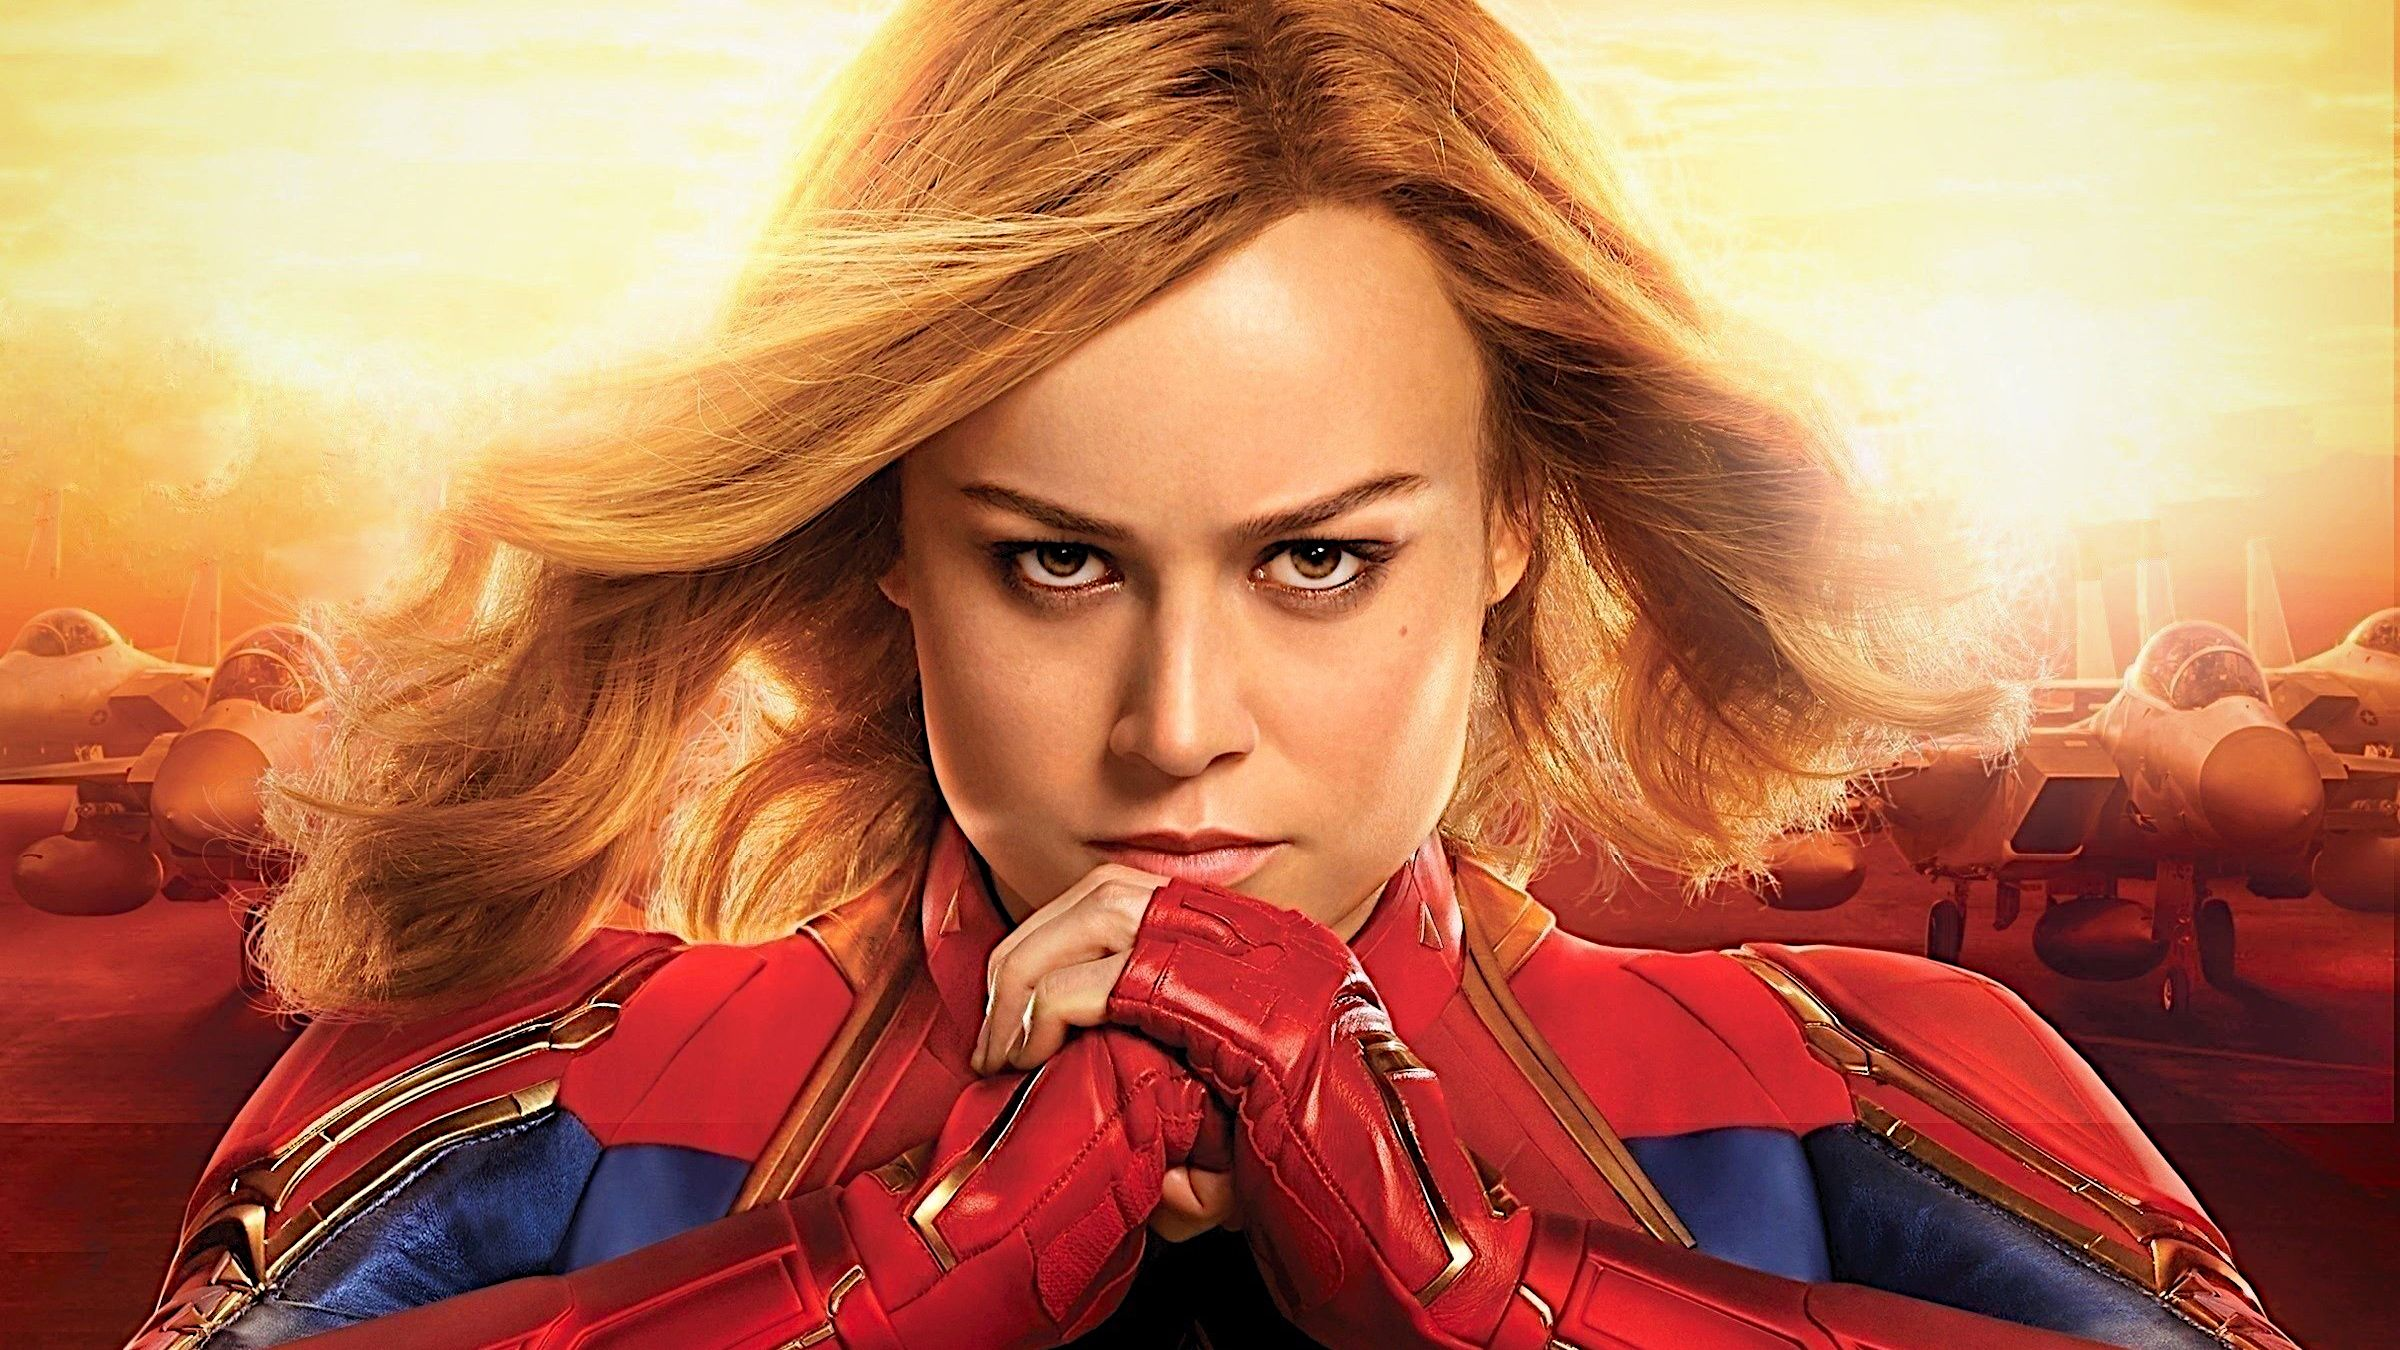 2400x1350 Captain Marvel Brie Larson, HD Movies, 4k Wallpapers, Images ...